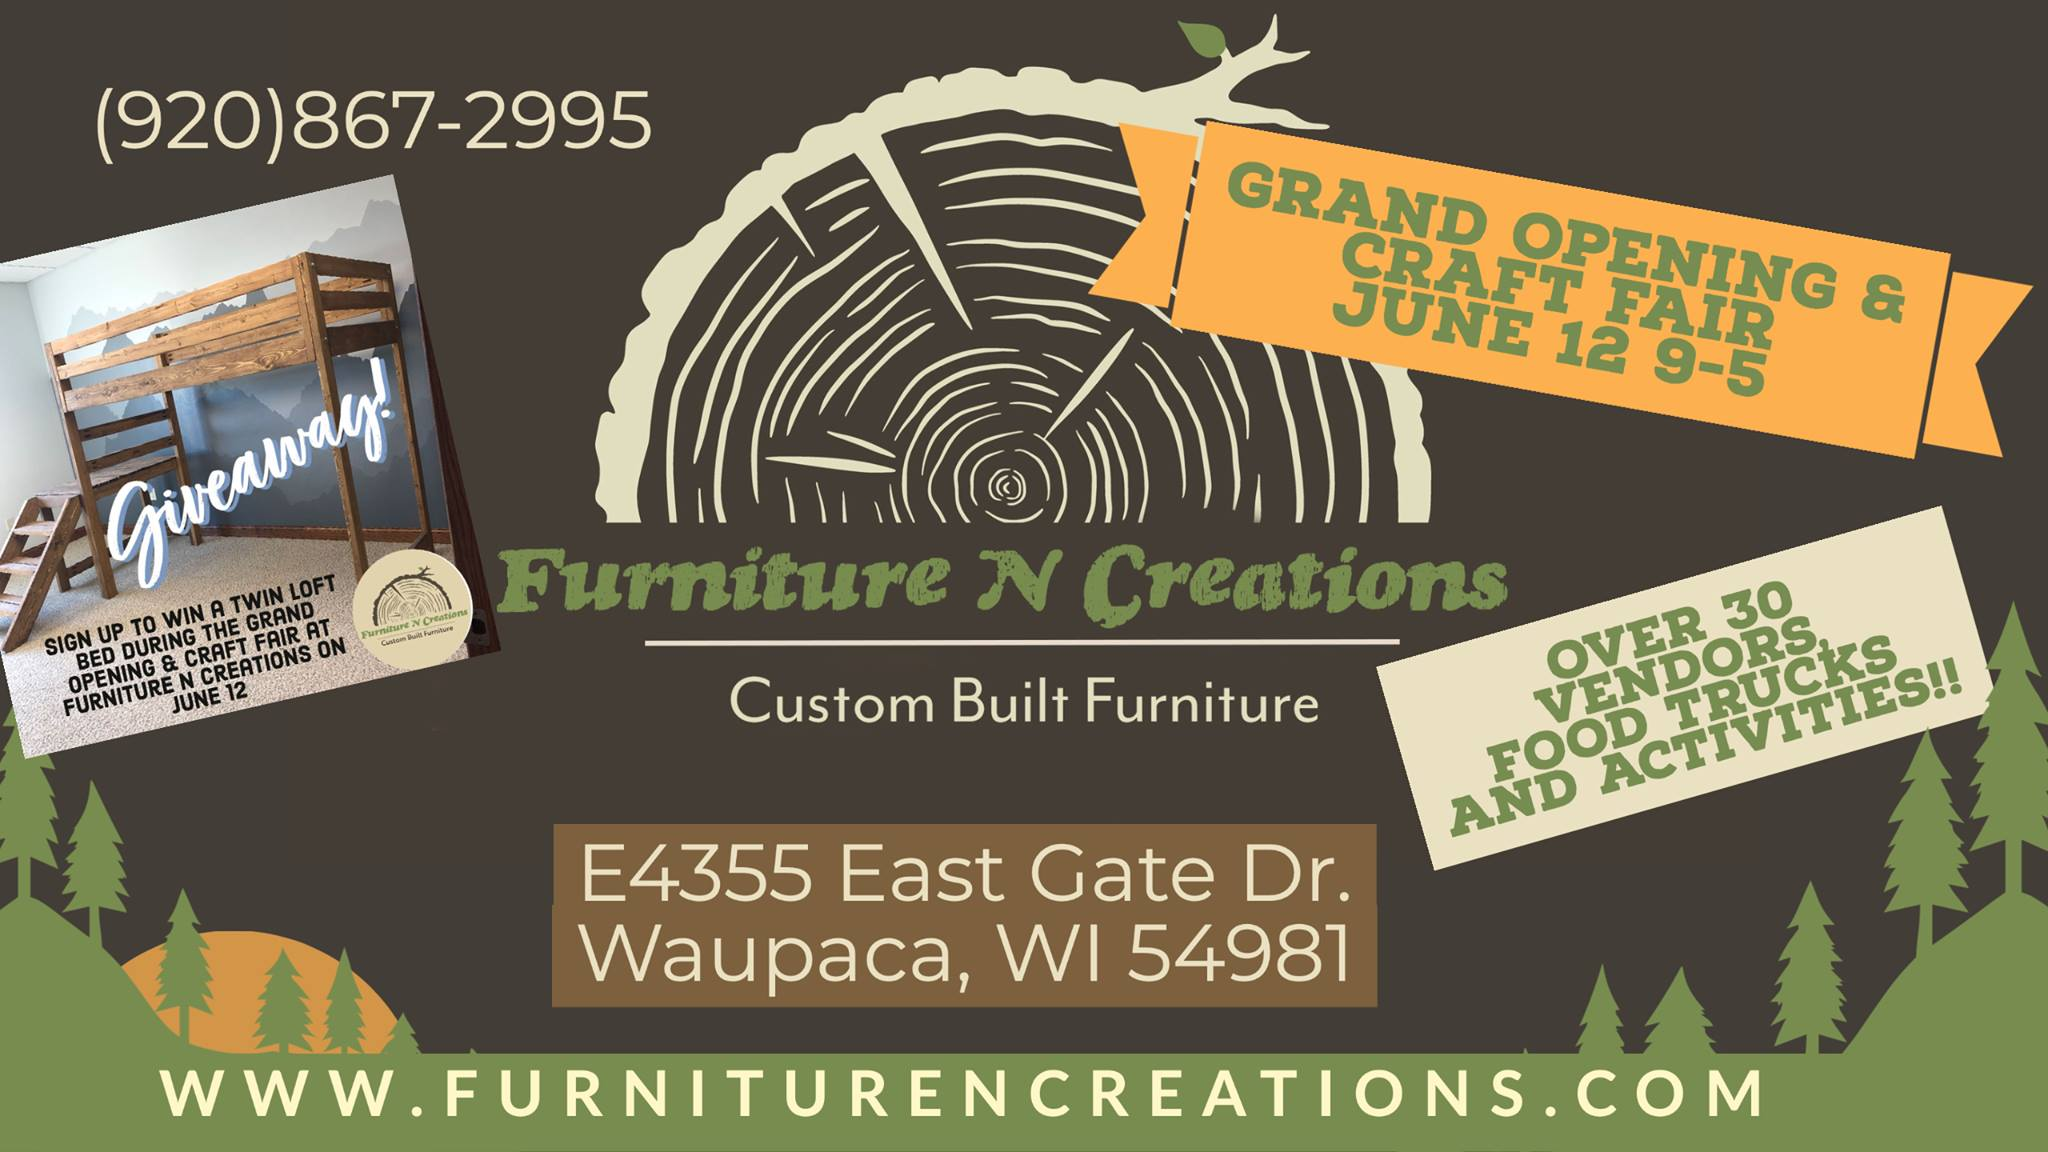 Grand Opening and Craft Fair